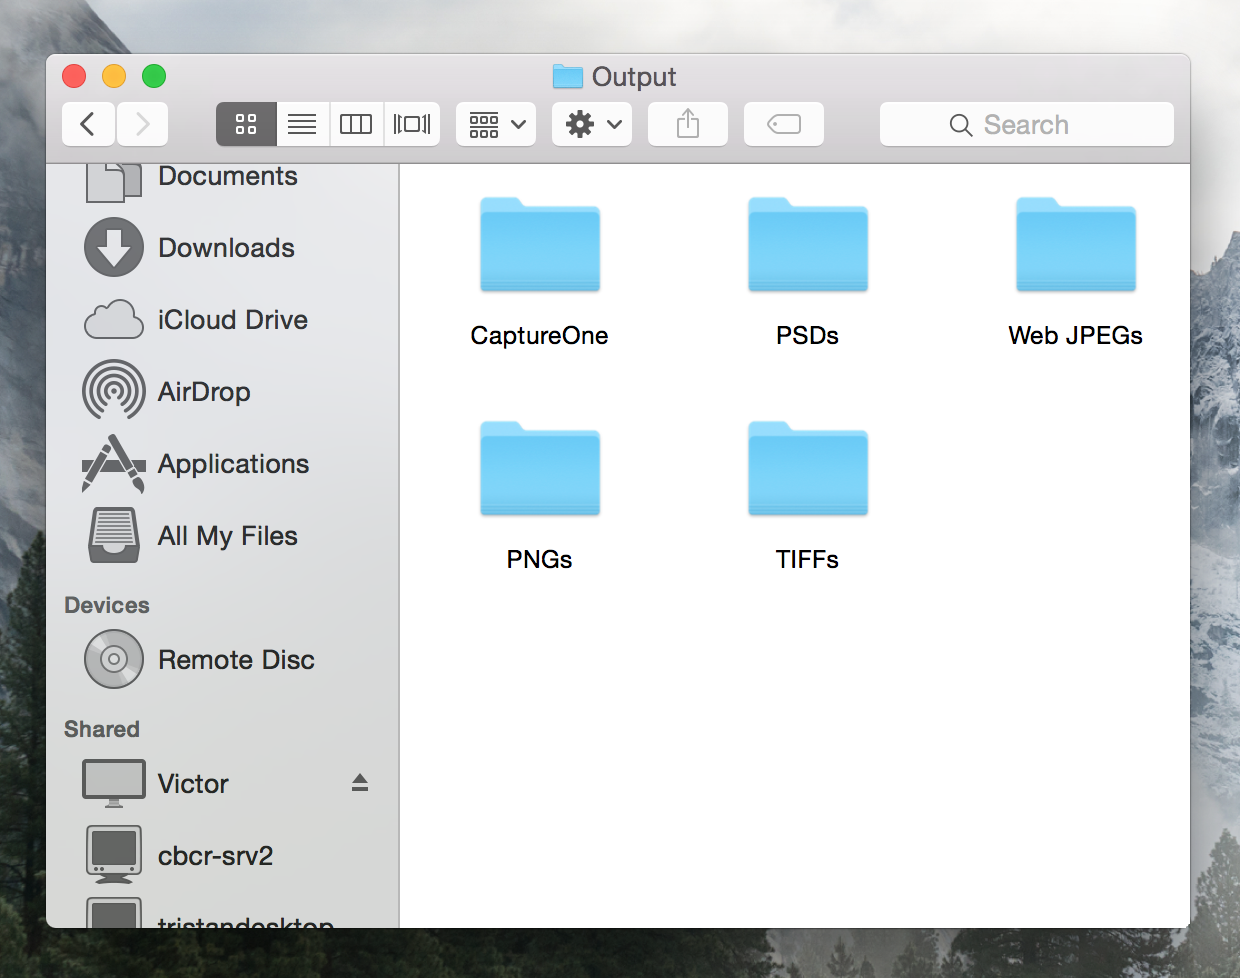 Each file type has it's own directory. The files will, of course, sport the same file name across the different types.